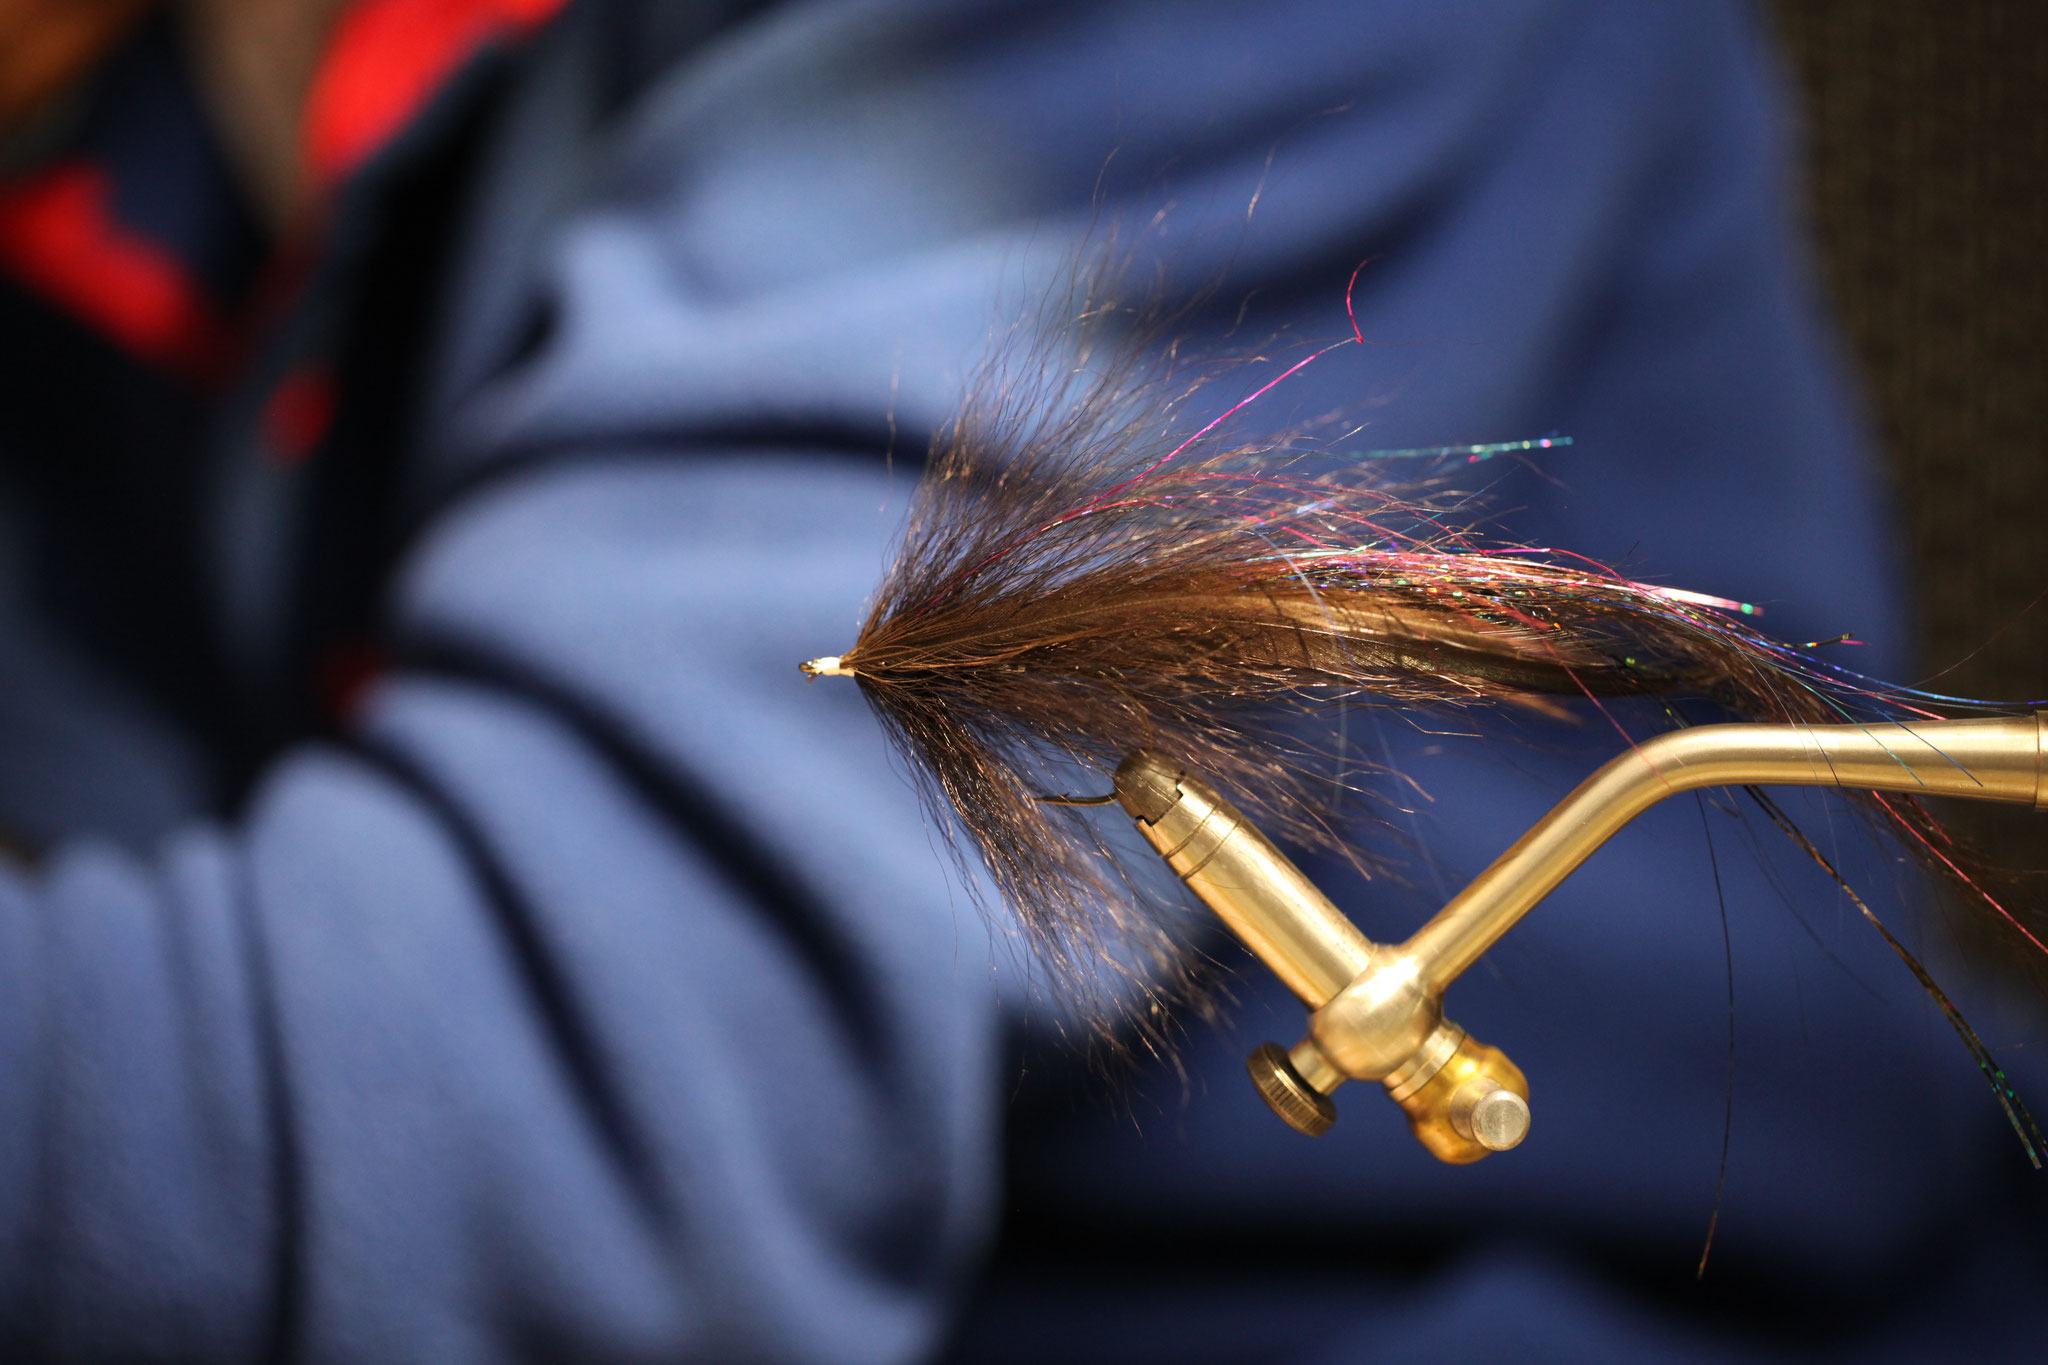 Build a collar with reverse tied bucktail, add more flash and feathers and finish with another collar, then whip finish